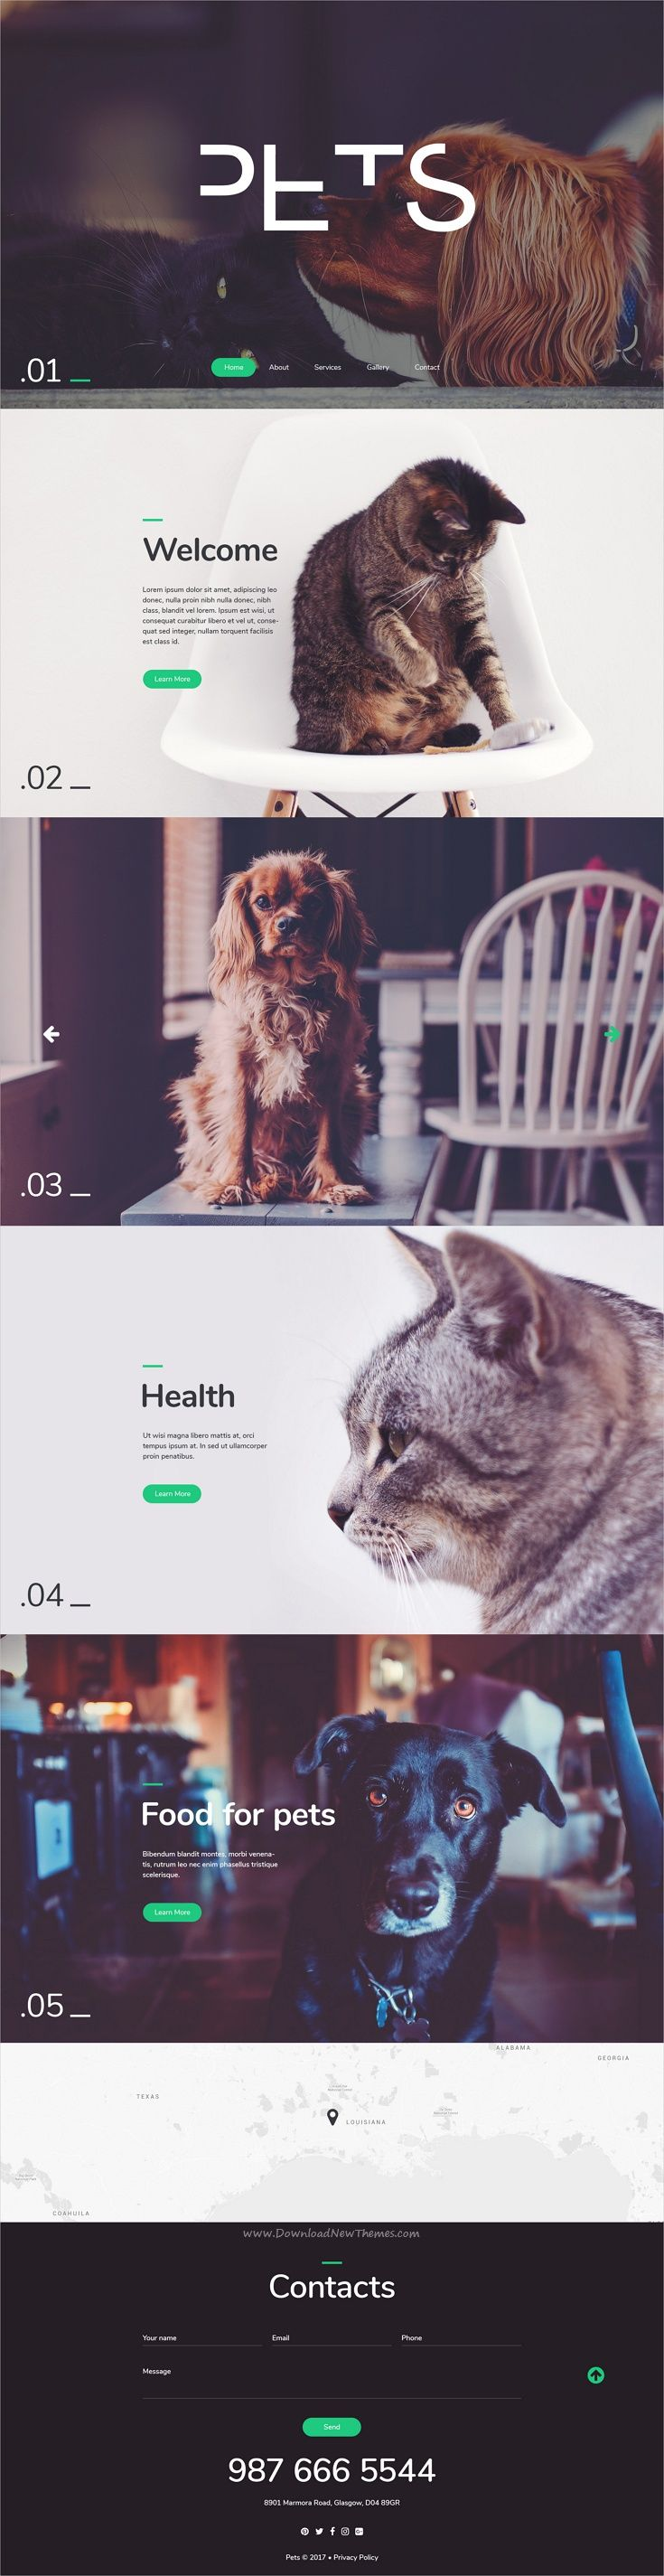 Pets is an elegant, minimal design #PSD template for #webdev #pet services industries websites download now➩ https://themeforest.net/item/pets-modern-psd-template/19343878?ref=Datasata